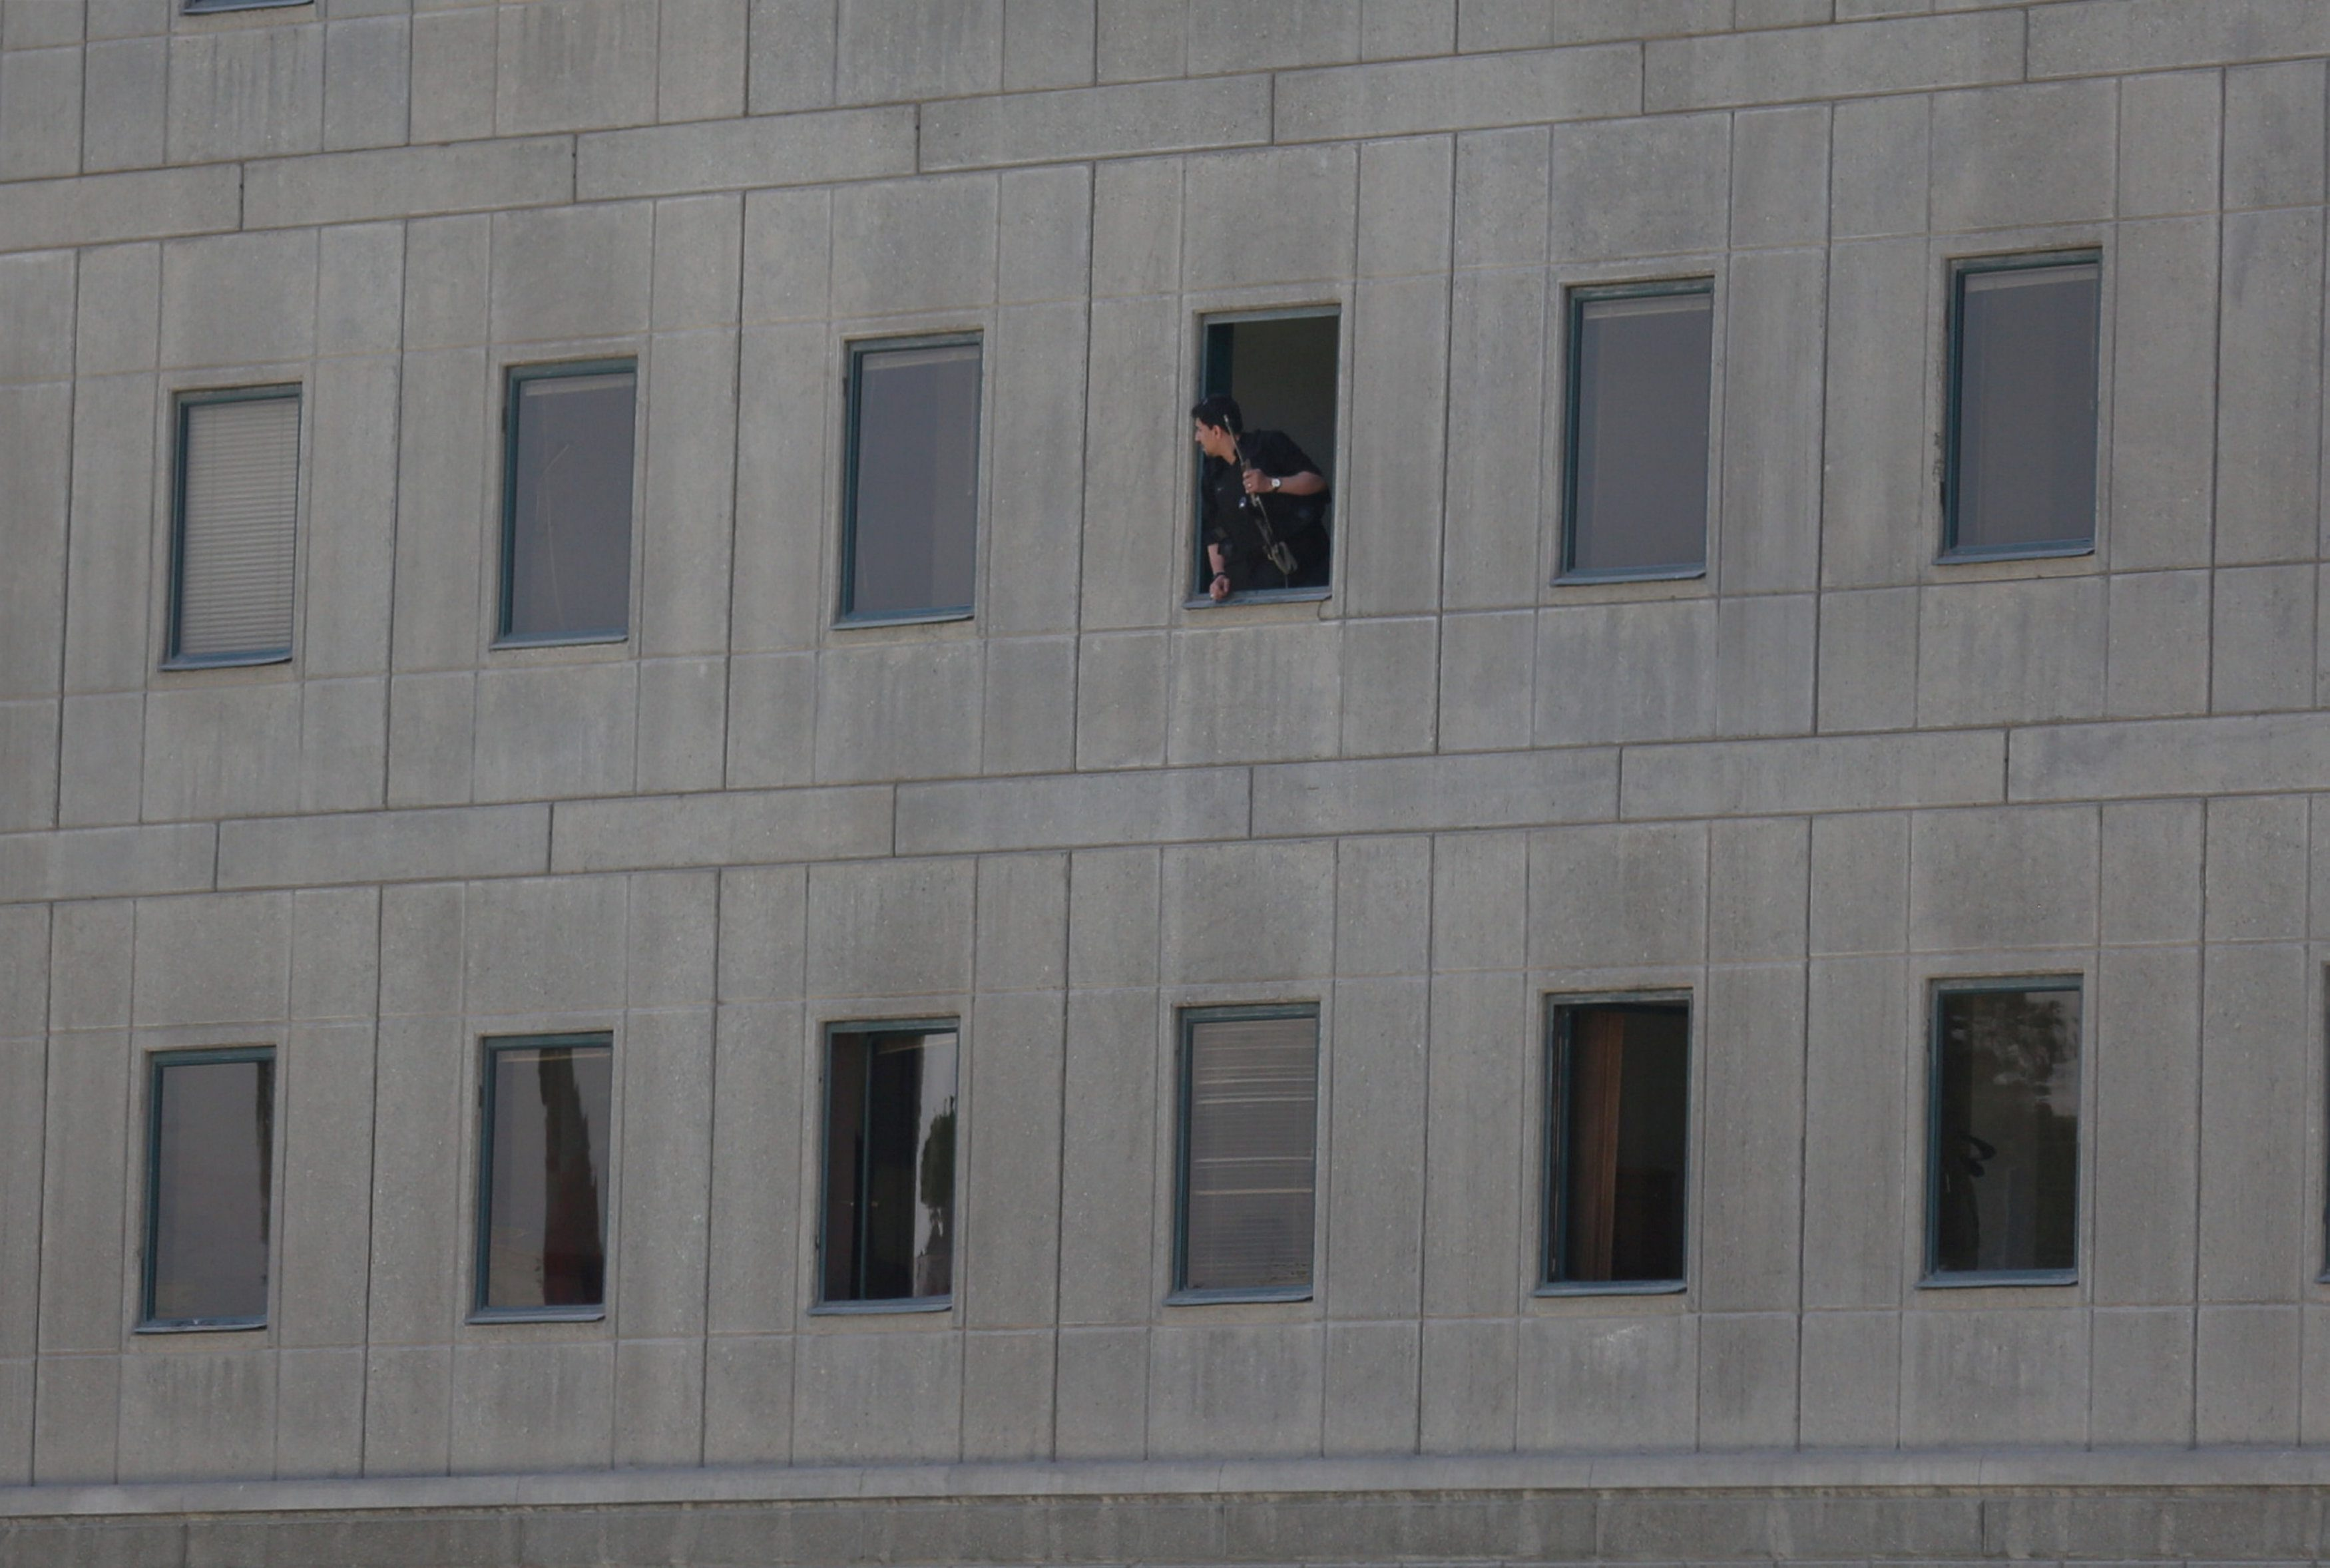 An Iranian policeman looks out of the parliament's building in central Tehran, Iran, June 7, 2017. TIMA via REUTERS ATTENTION EDITORS - THIS IMAGE WAS PROVIDED BY A THIRD PARTY. FOR EDITORIAL USE ONLY.